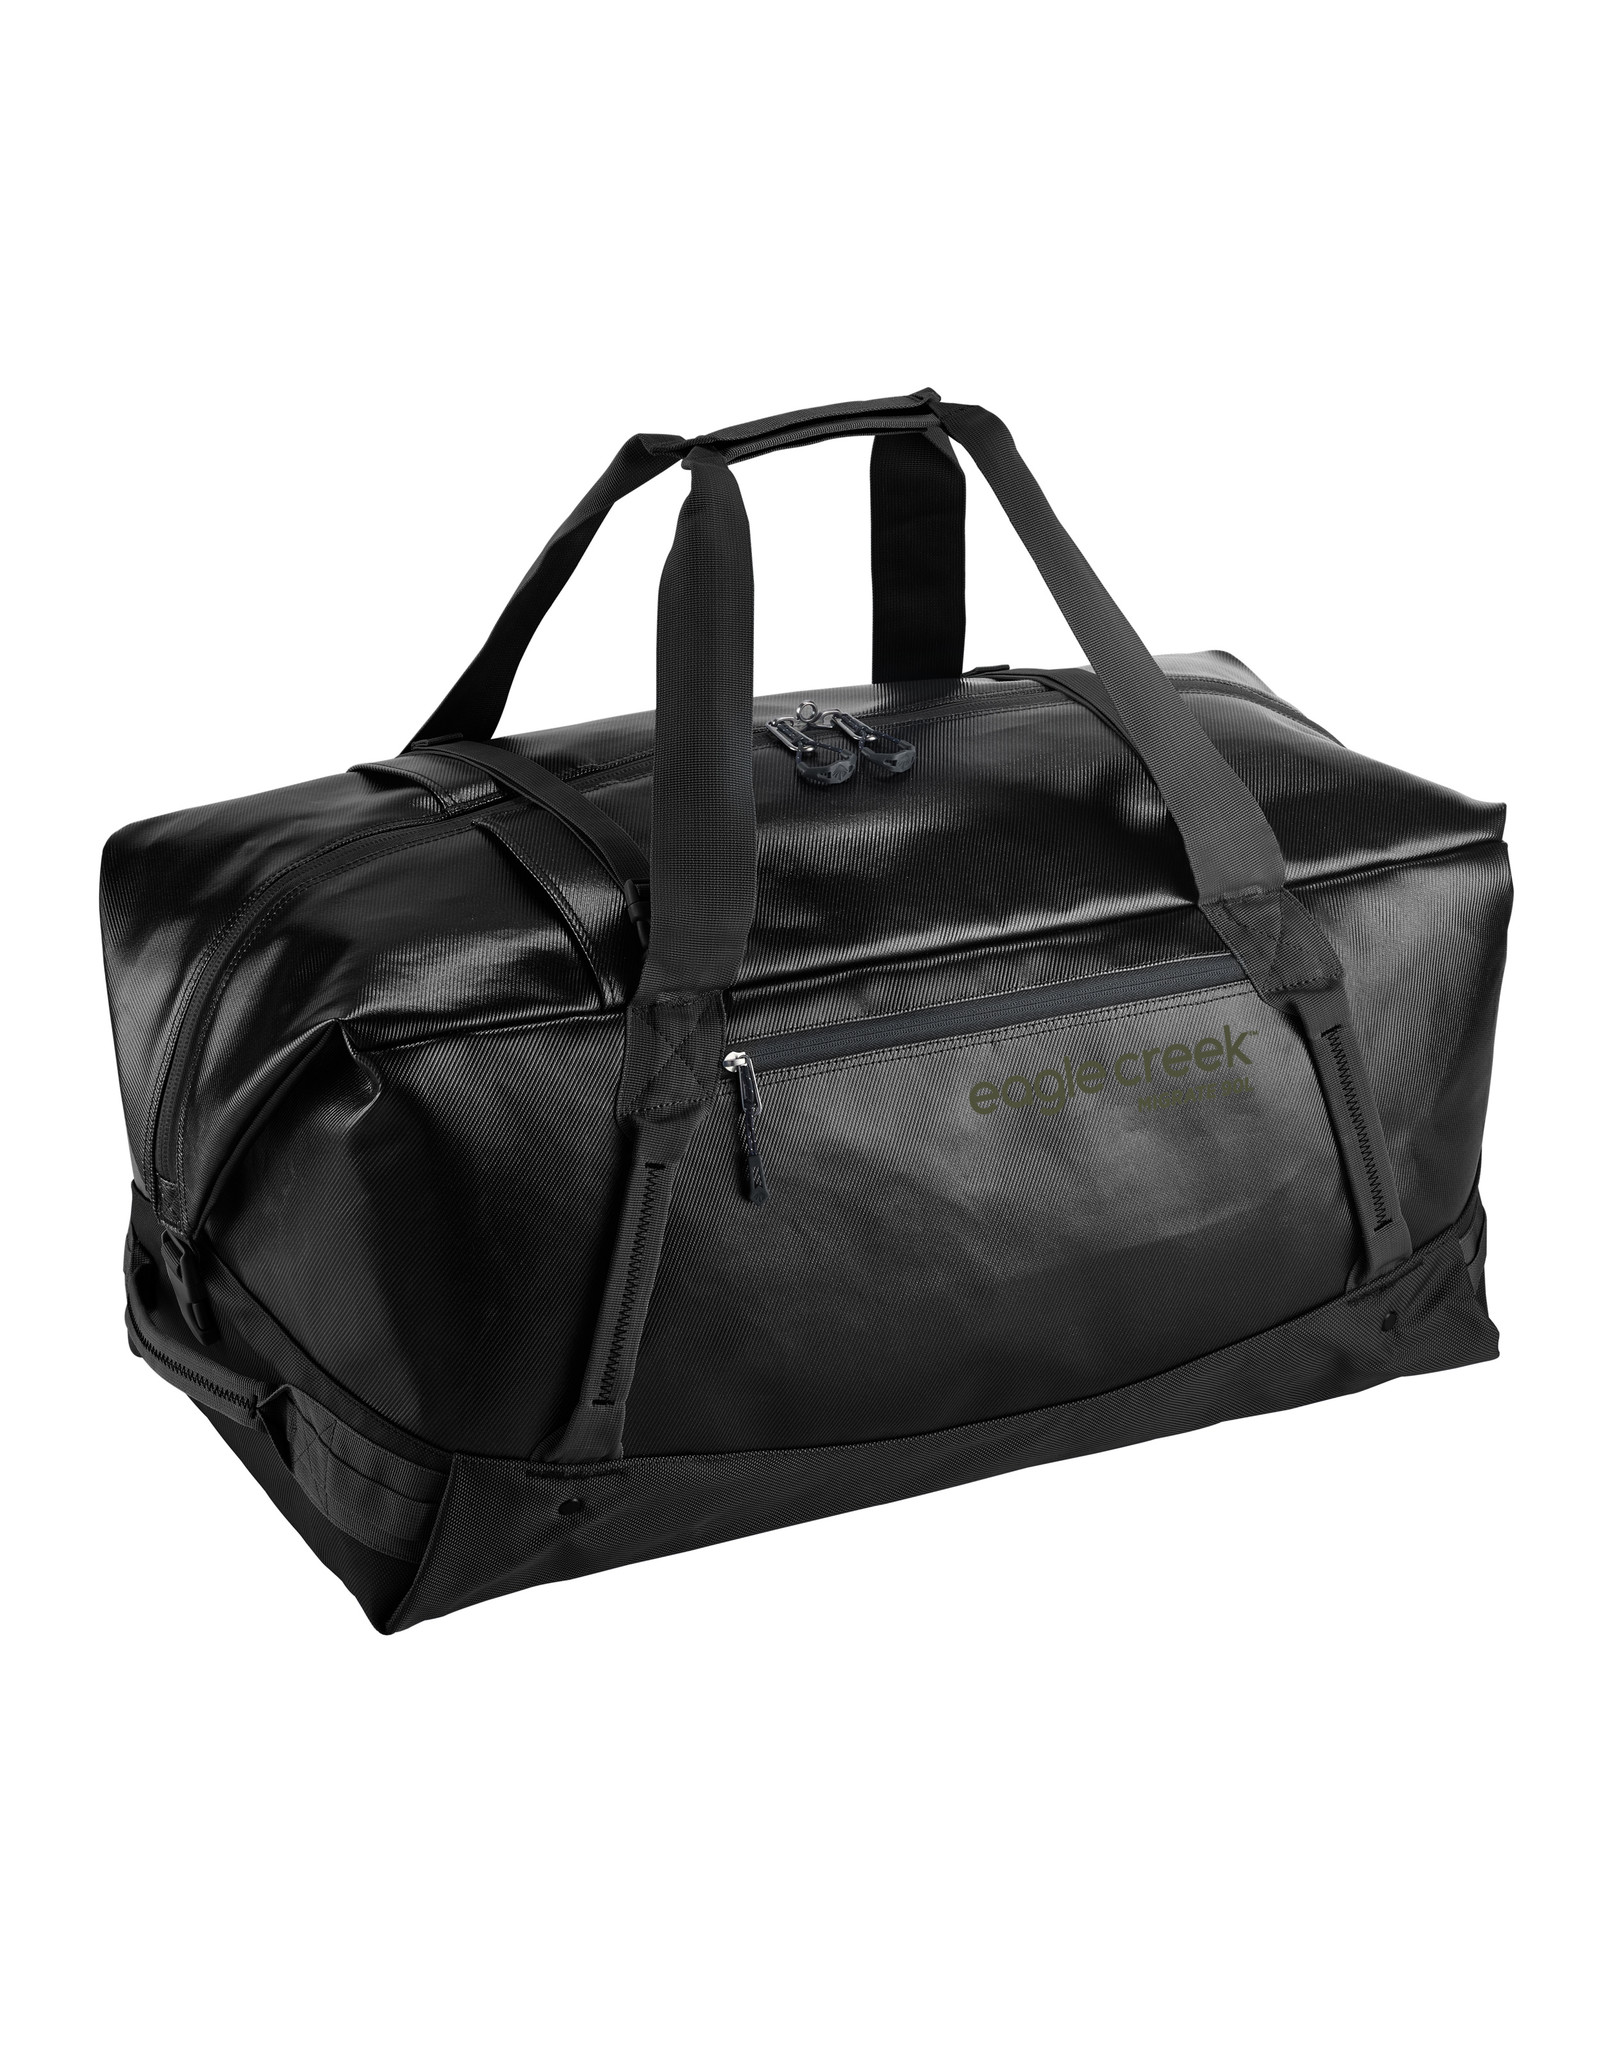 Eagle Creek Migrate Duffel